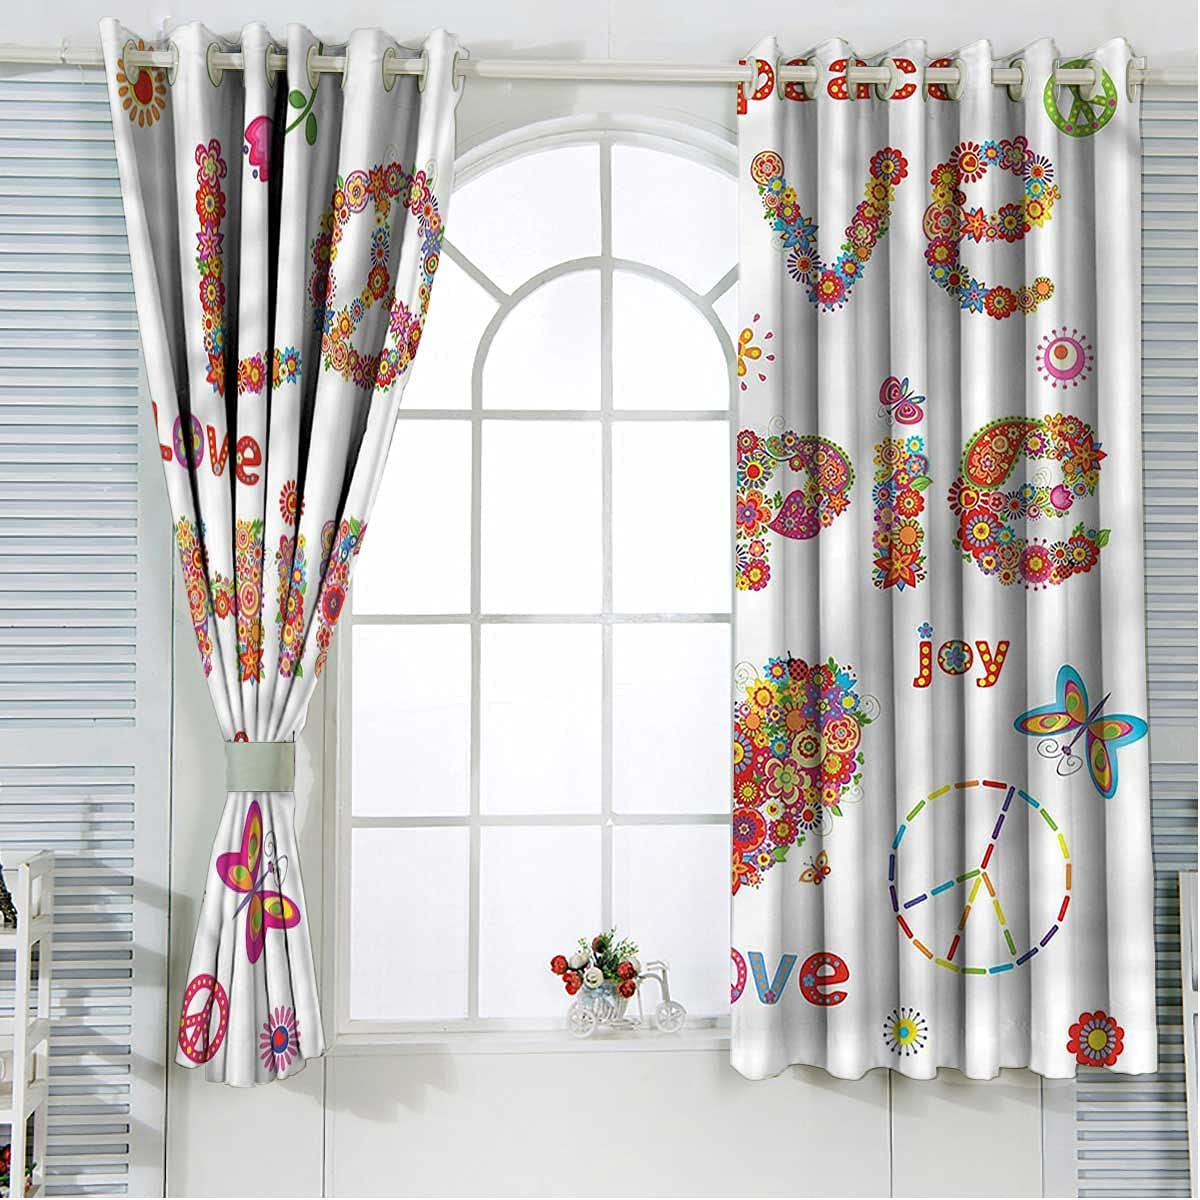 Groovy Soundproof Curtains Max 61% OFF 108 Inch Length Hippie Flo Now on sale Vivid Love